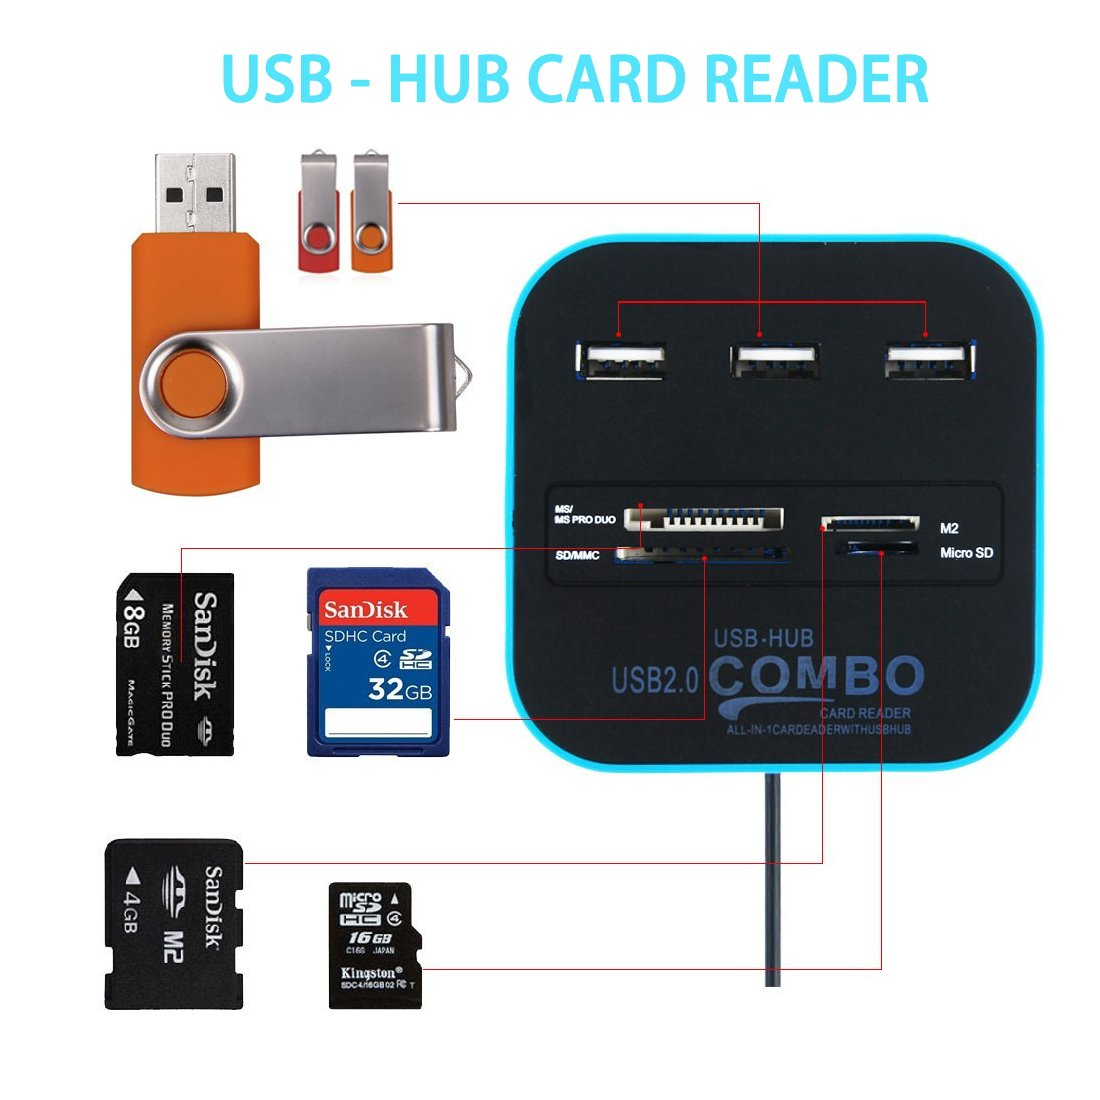 LLP 2 Pack All in One Premium Combo Multi-in-1 Card Reader 3 Ports USB Hub Mini Port Adapter External Memory Card Reader for MS/MS PRO Duo SD/MMC M2 Micro SD/TF Card Reader for Notebook Laptop Camera by LLP (Image #3)